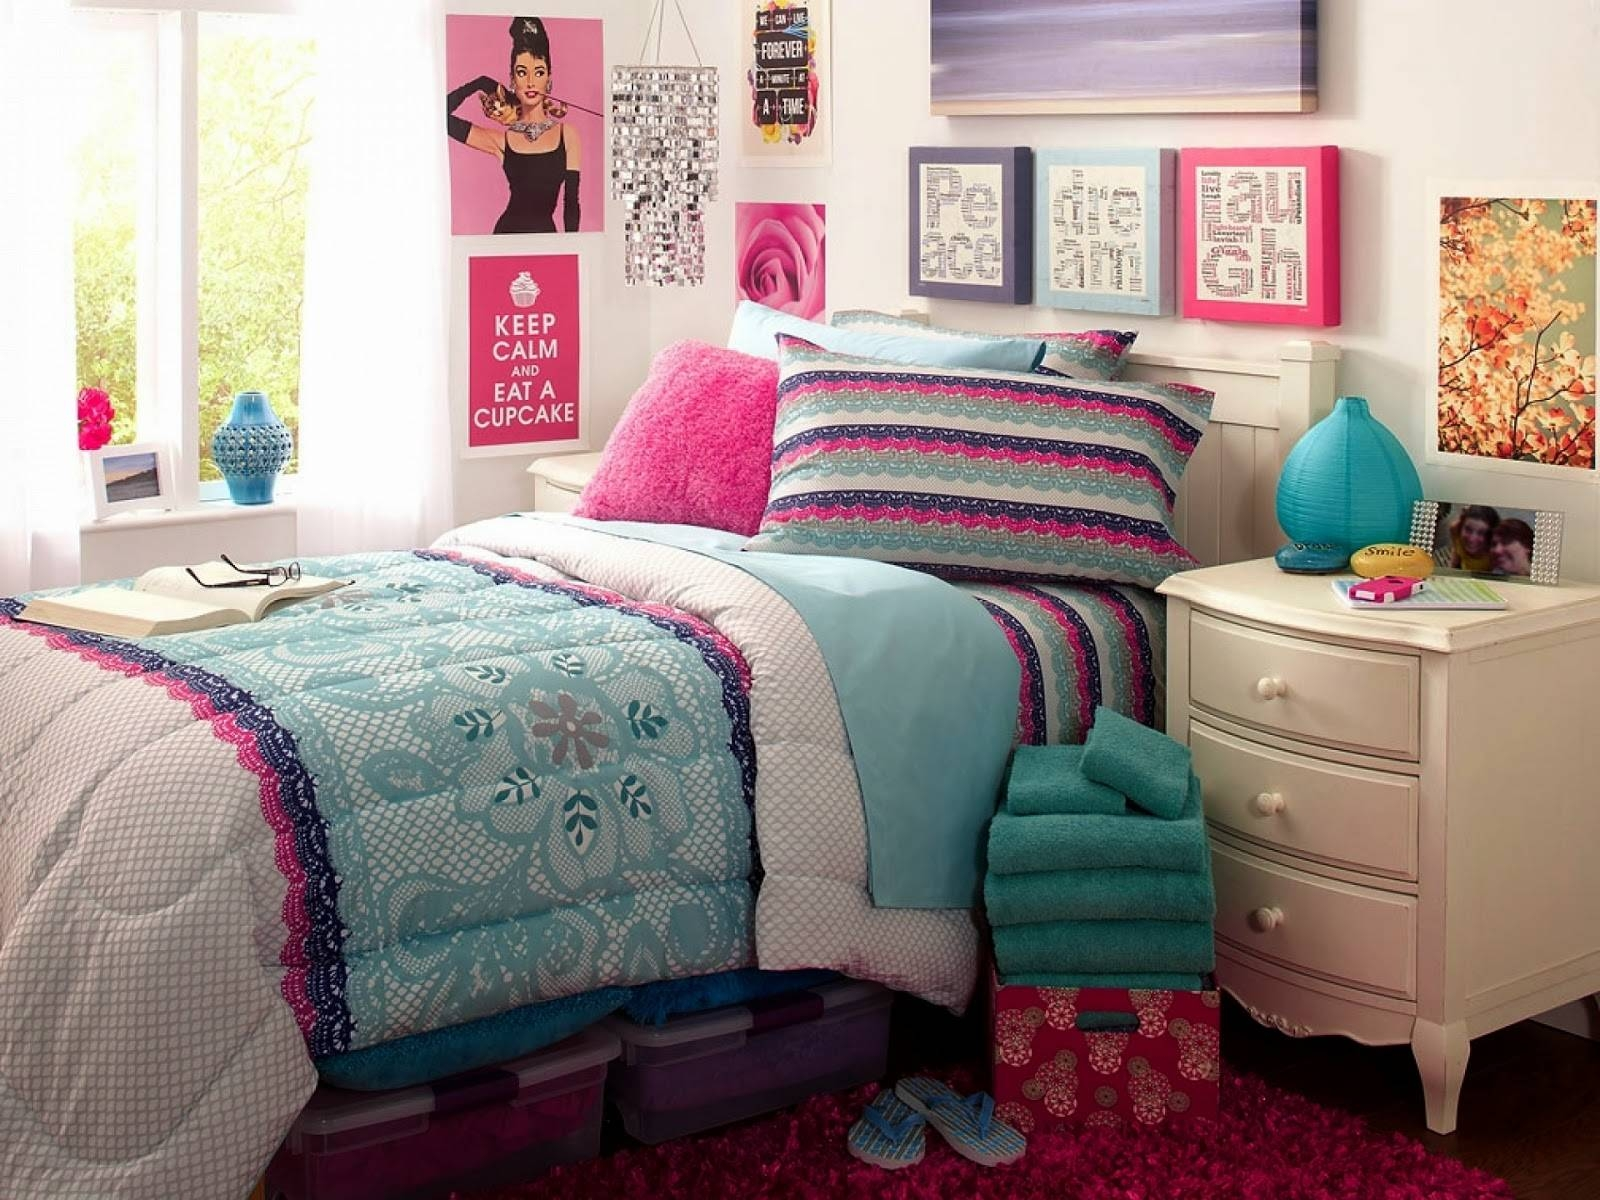 Cool Wall Art For Teens Home Design Wonderfull Beautiful And Cool Regarding Current Wall Art For Teens (View 11 of 20)